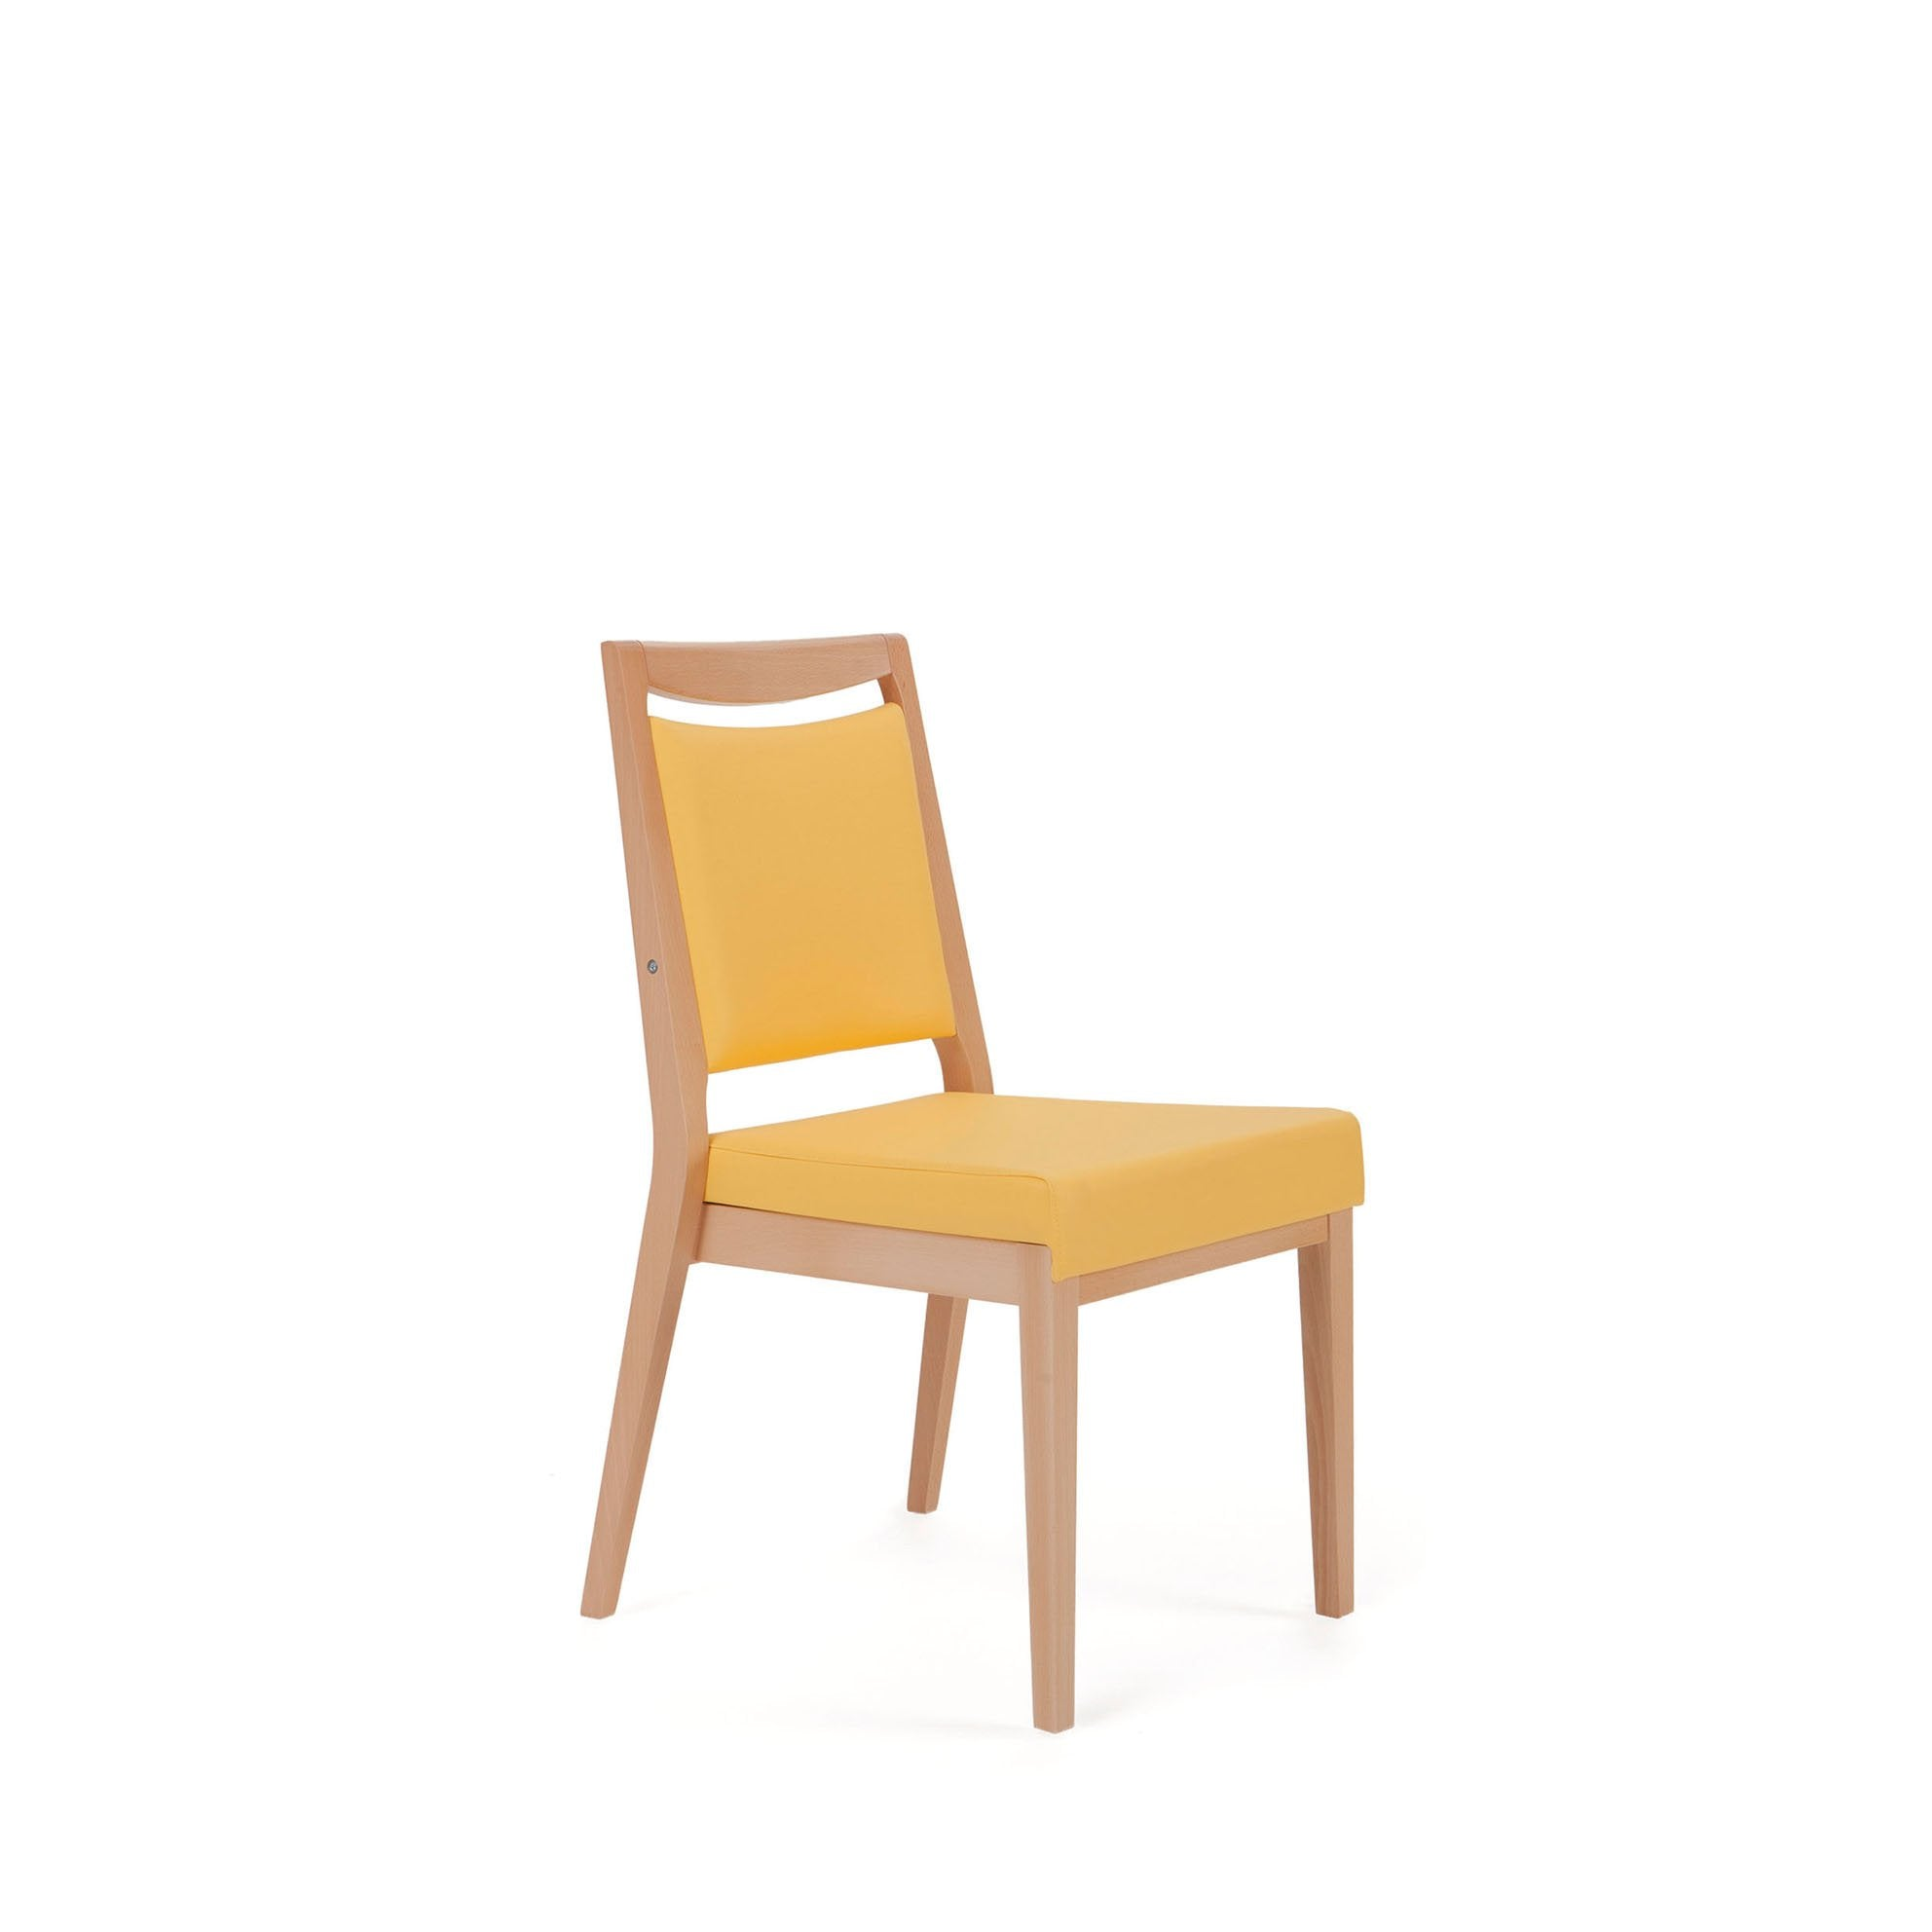 Aero 56-11/6 Side Chair-Piaval-Contract Furniture Store